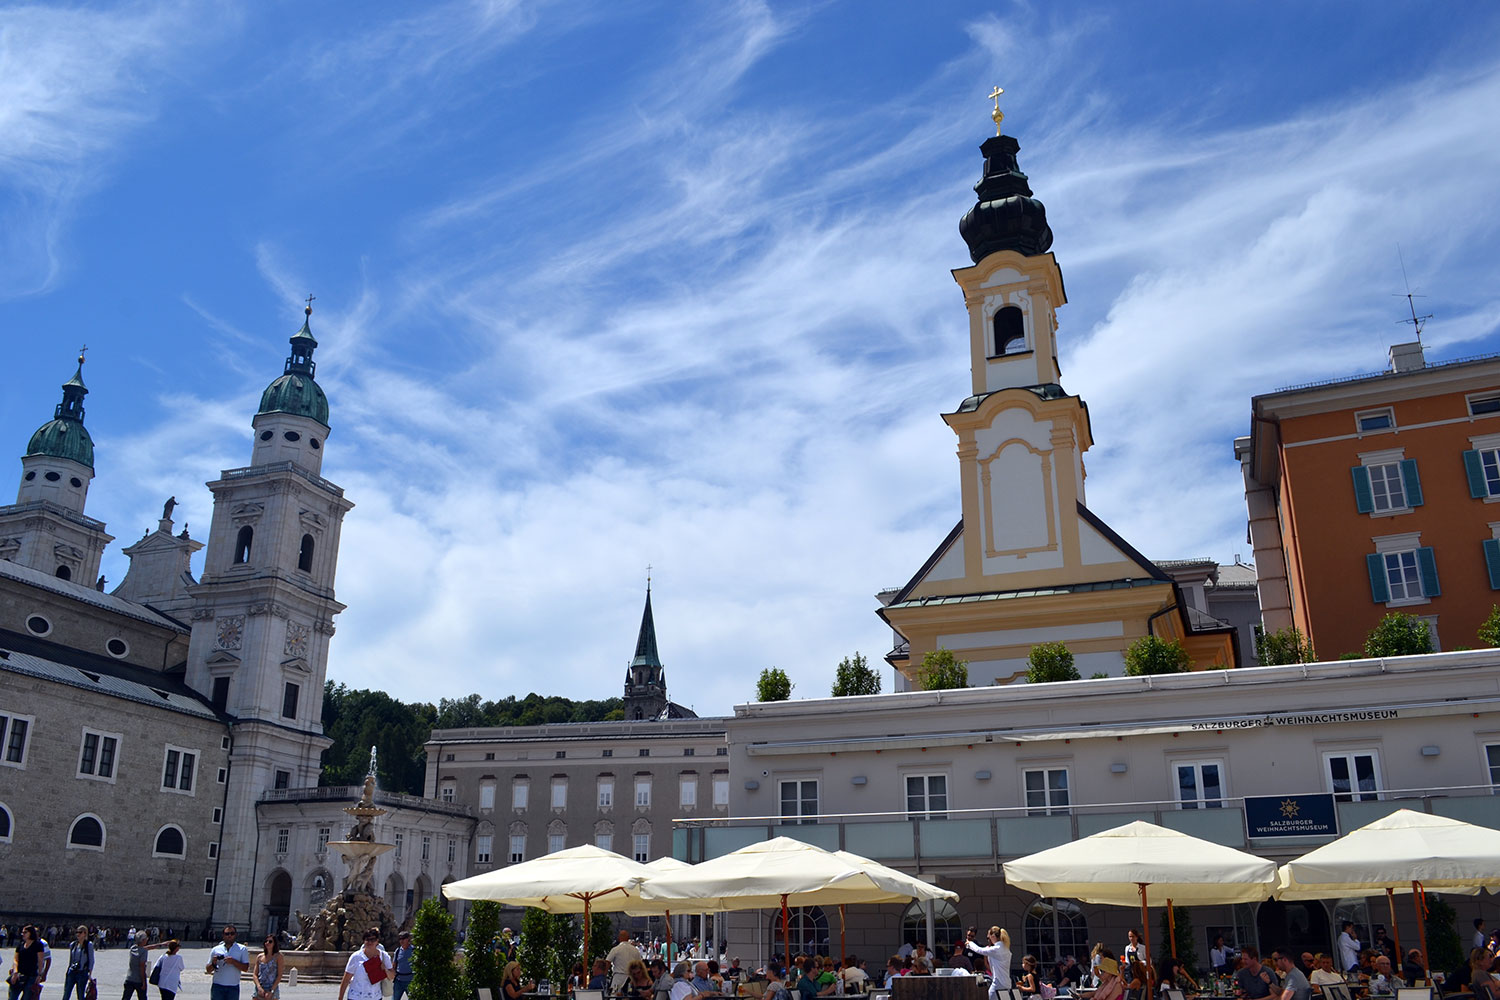 5 Things that Rocked my World in July - Salzburg 3